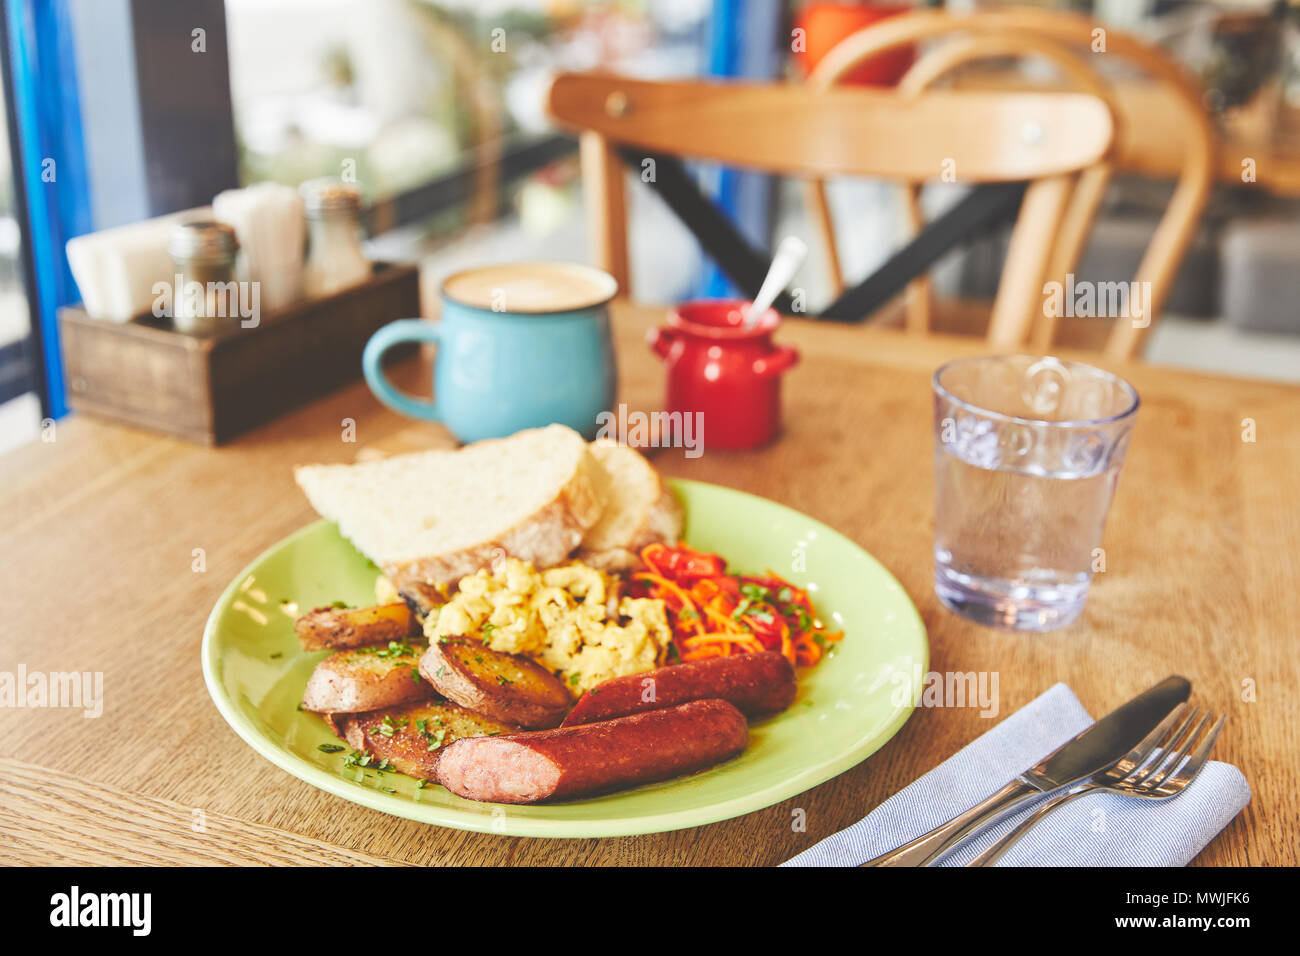 Brunch in restaurant with scramble eggs and coffee - Stock Image